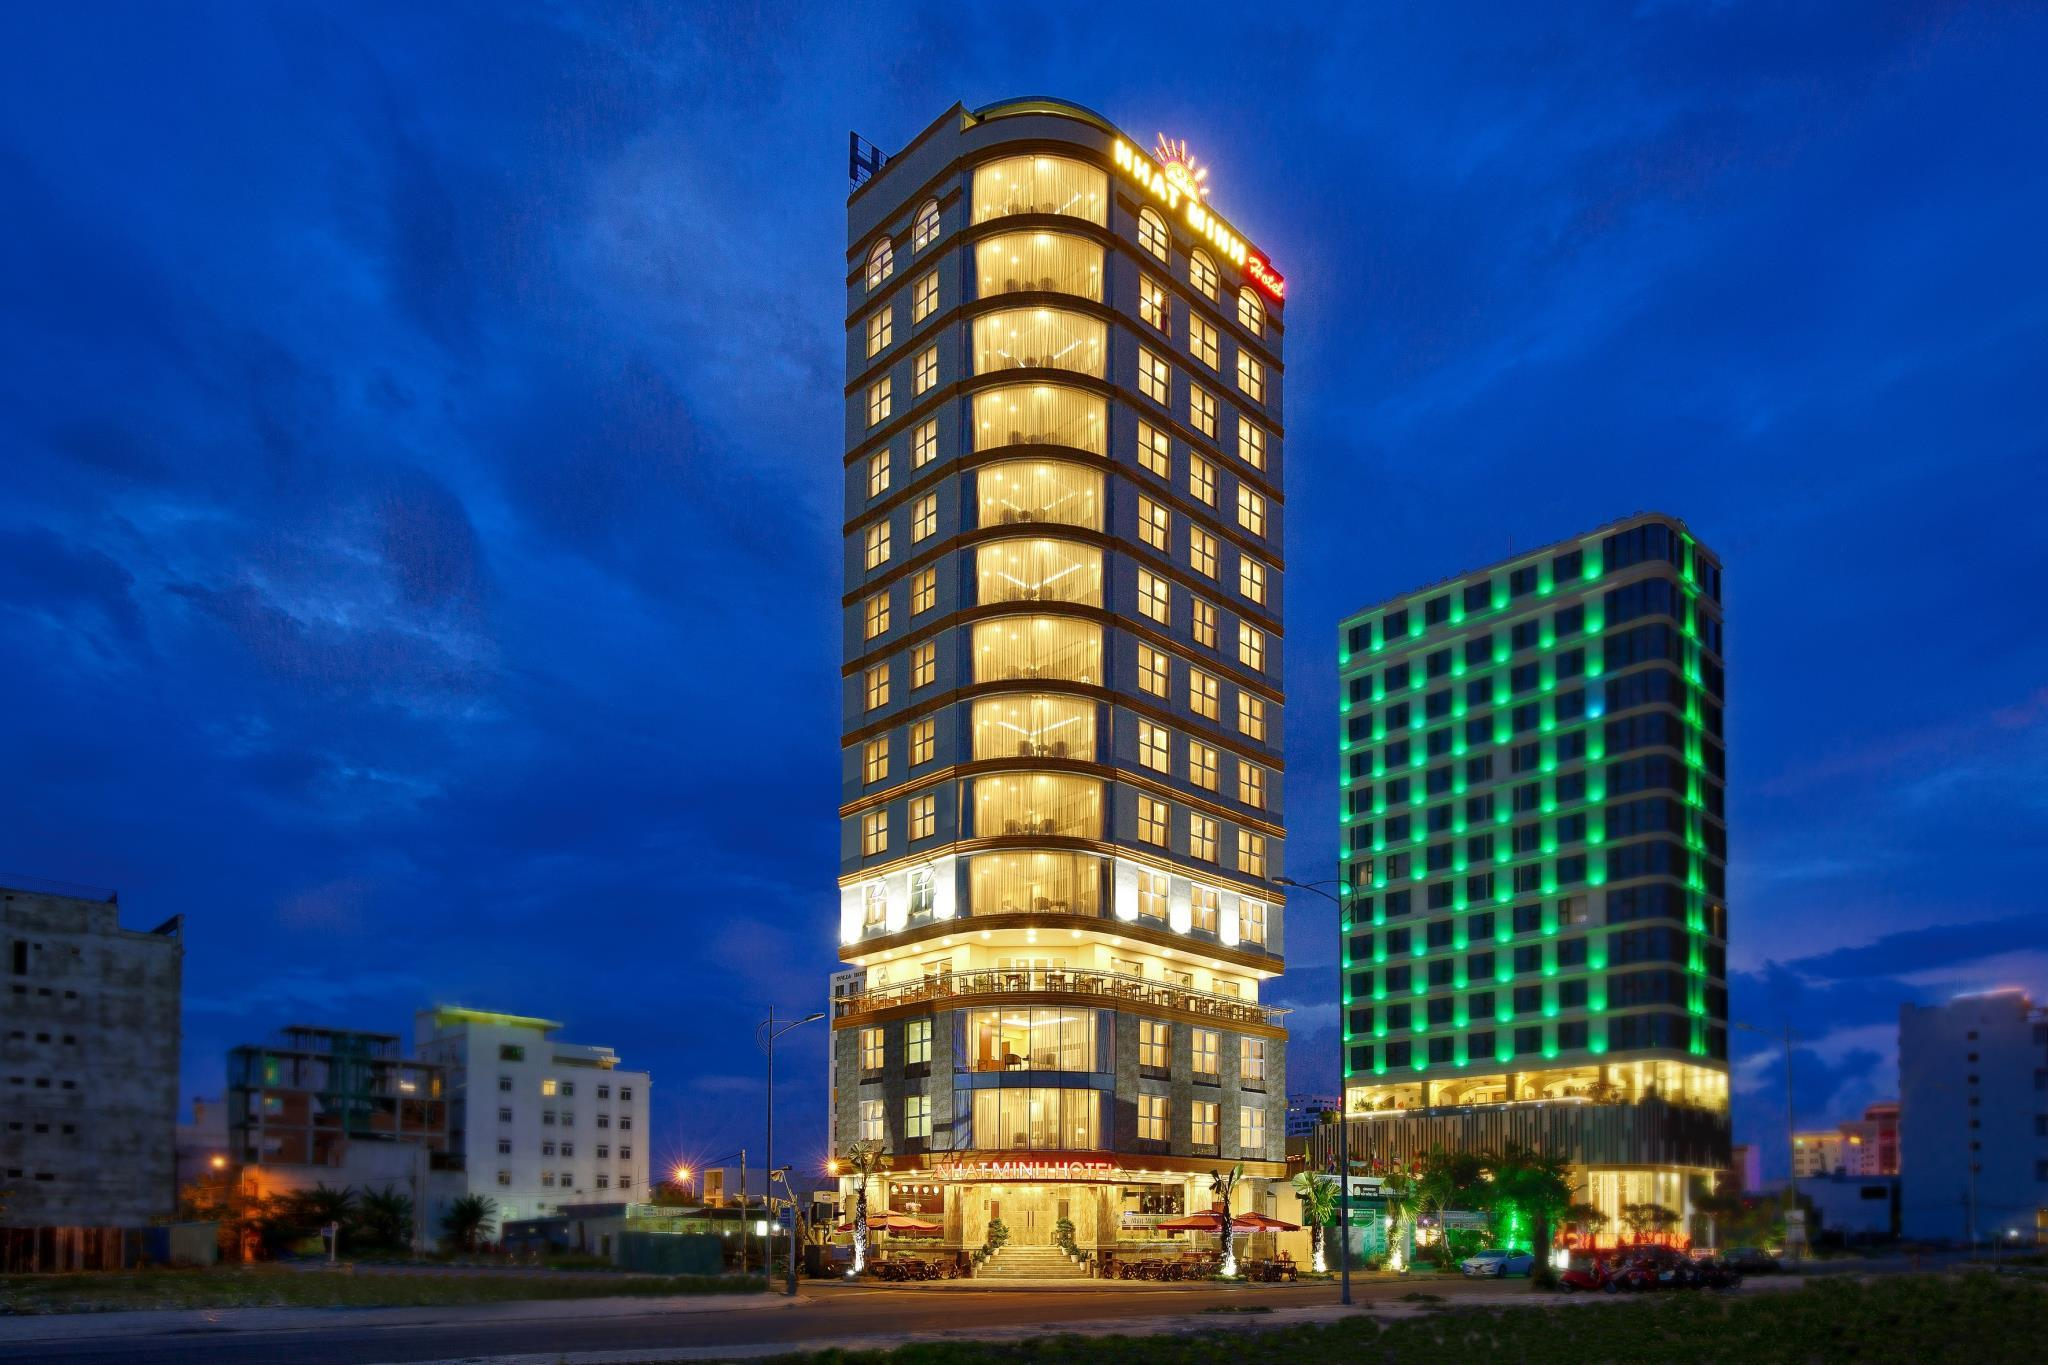 Da Nang Nhat Minh Hotel And Apartment In Vietnam Asia